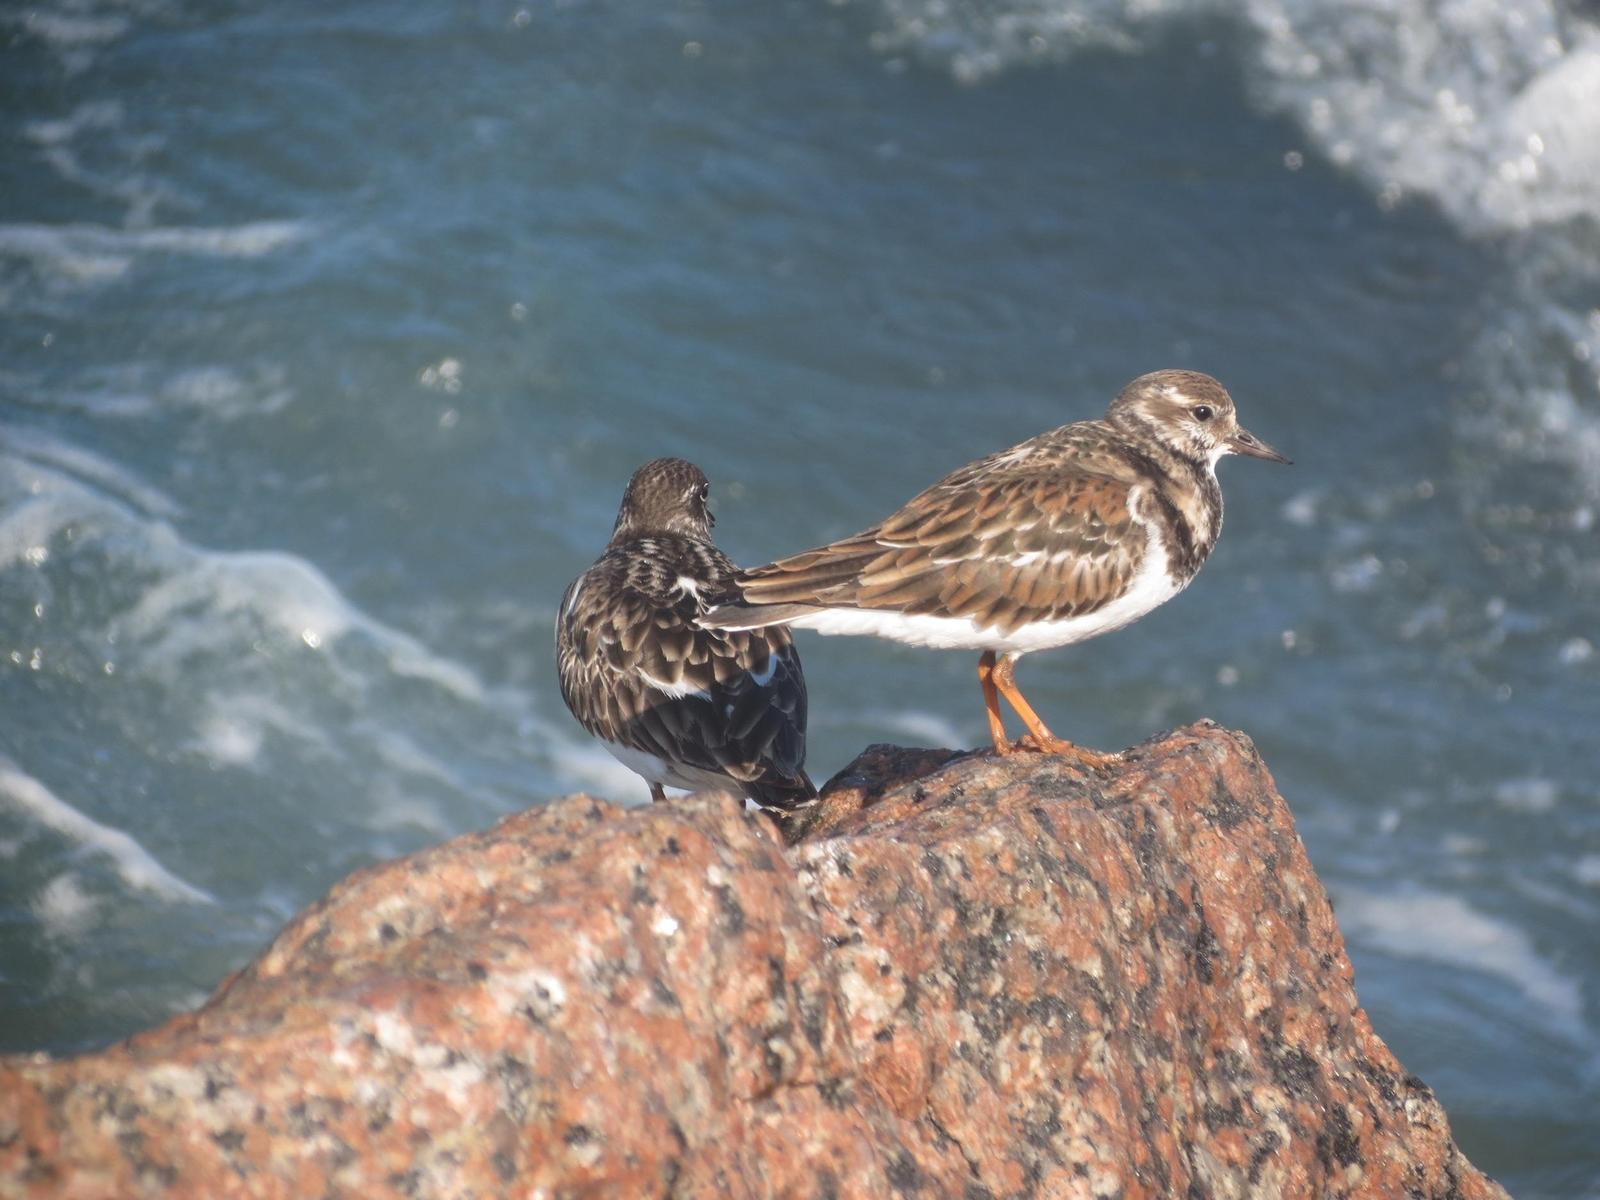 Ruddy Turnstone Photo by Nolan Keyes